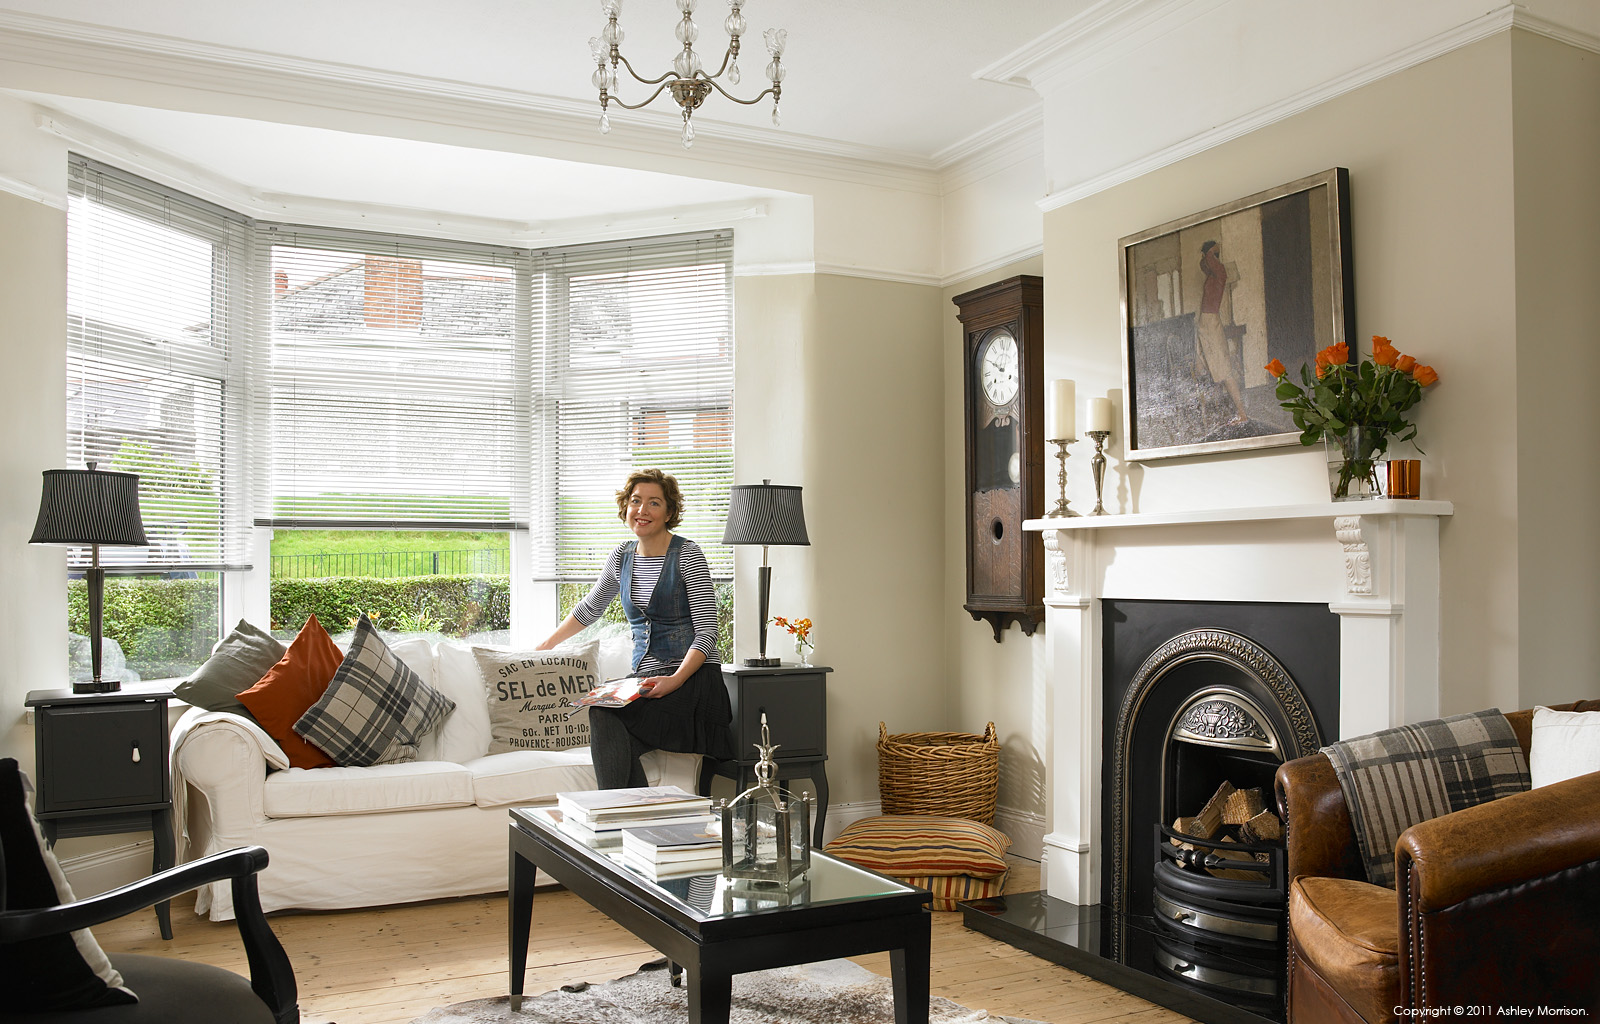 Janet Hamilton in the living room of her newly refurbished 1930s semi detached house in Belfast.